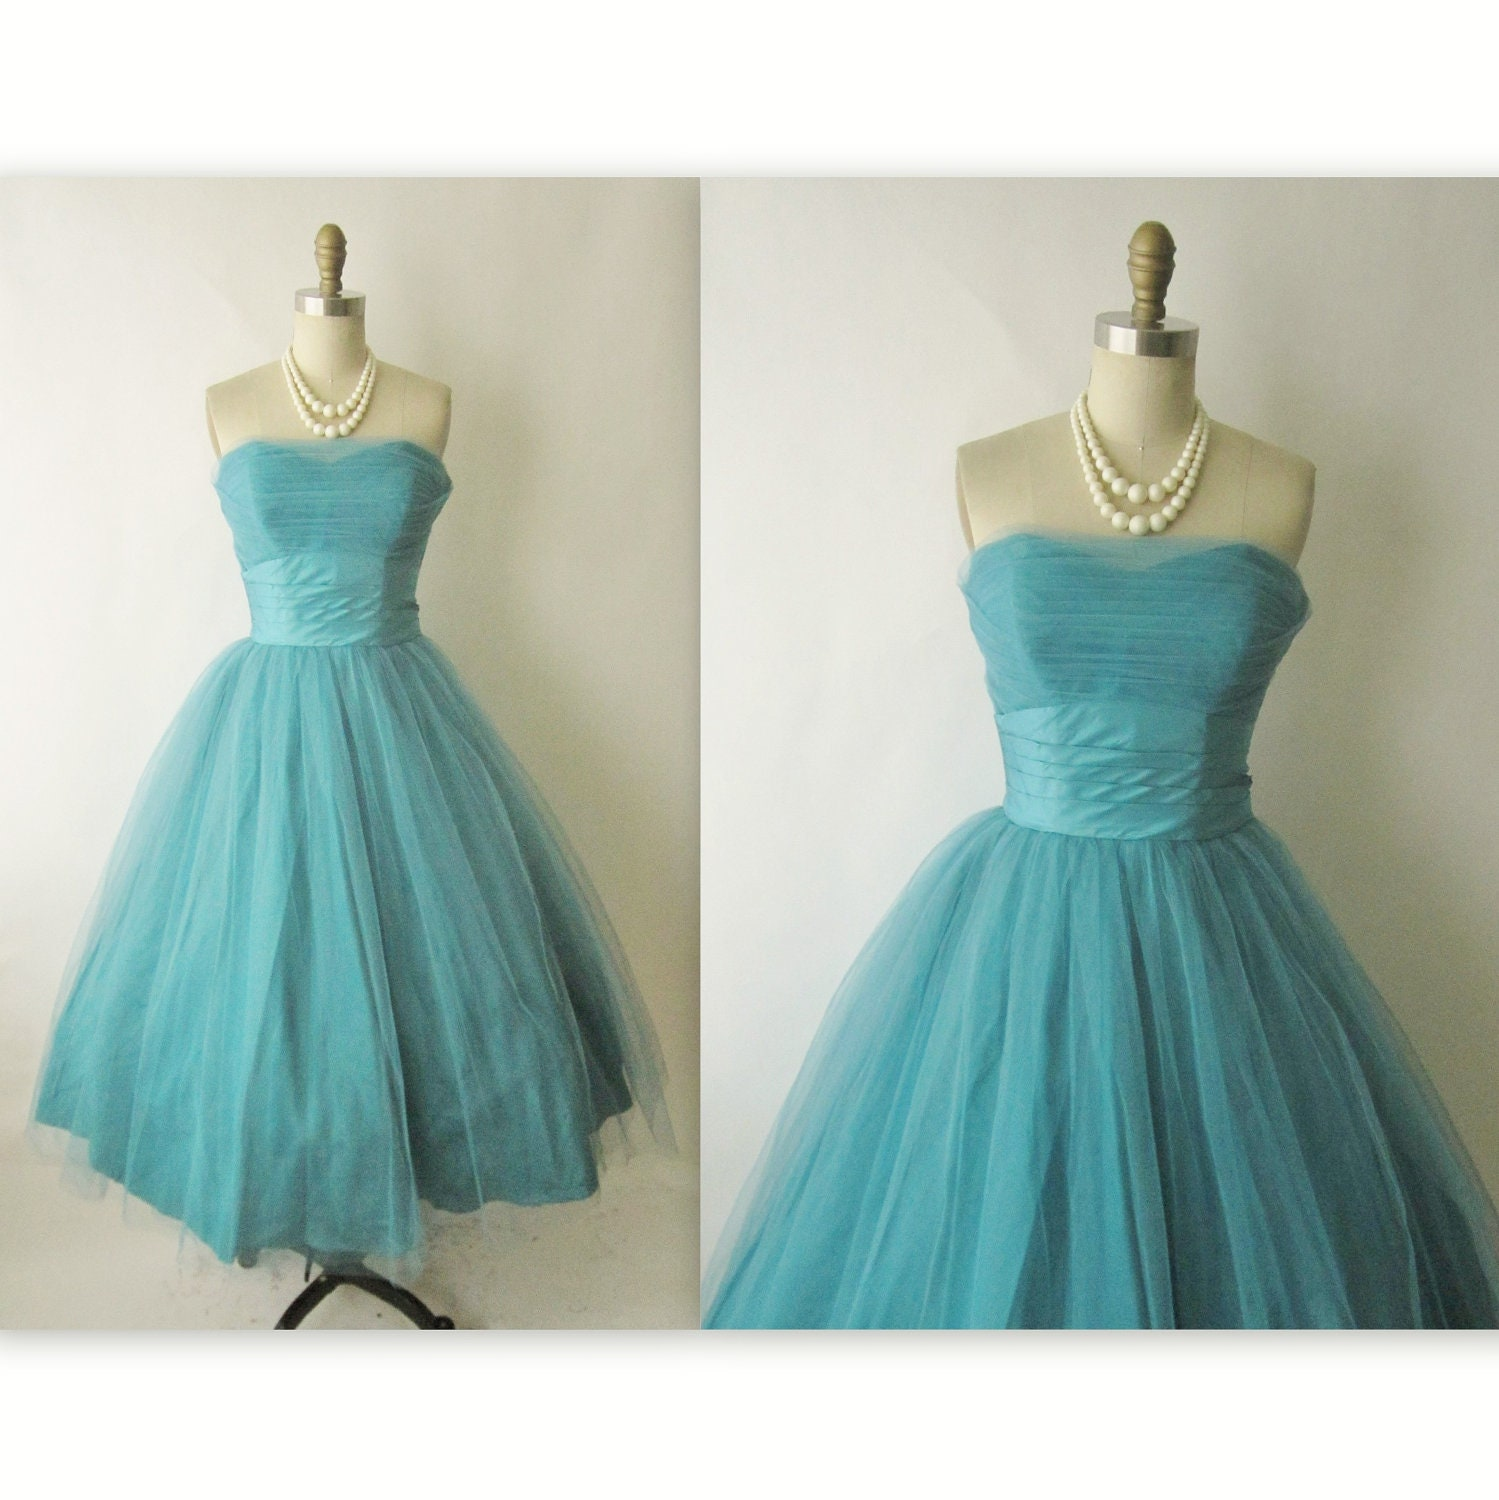 50's Prom Dress // Vintage 1950's Teal Strapless